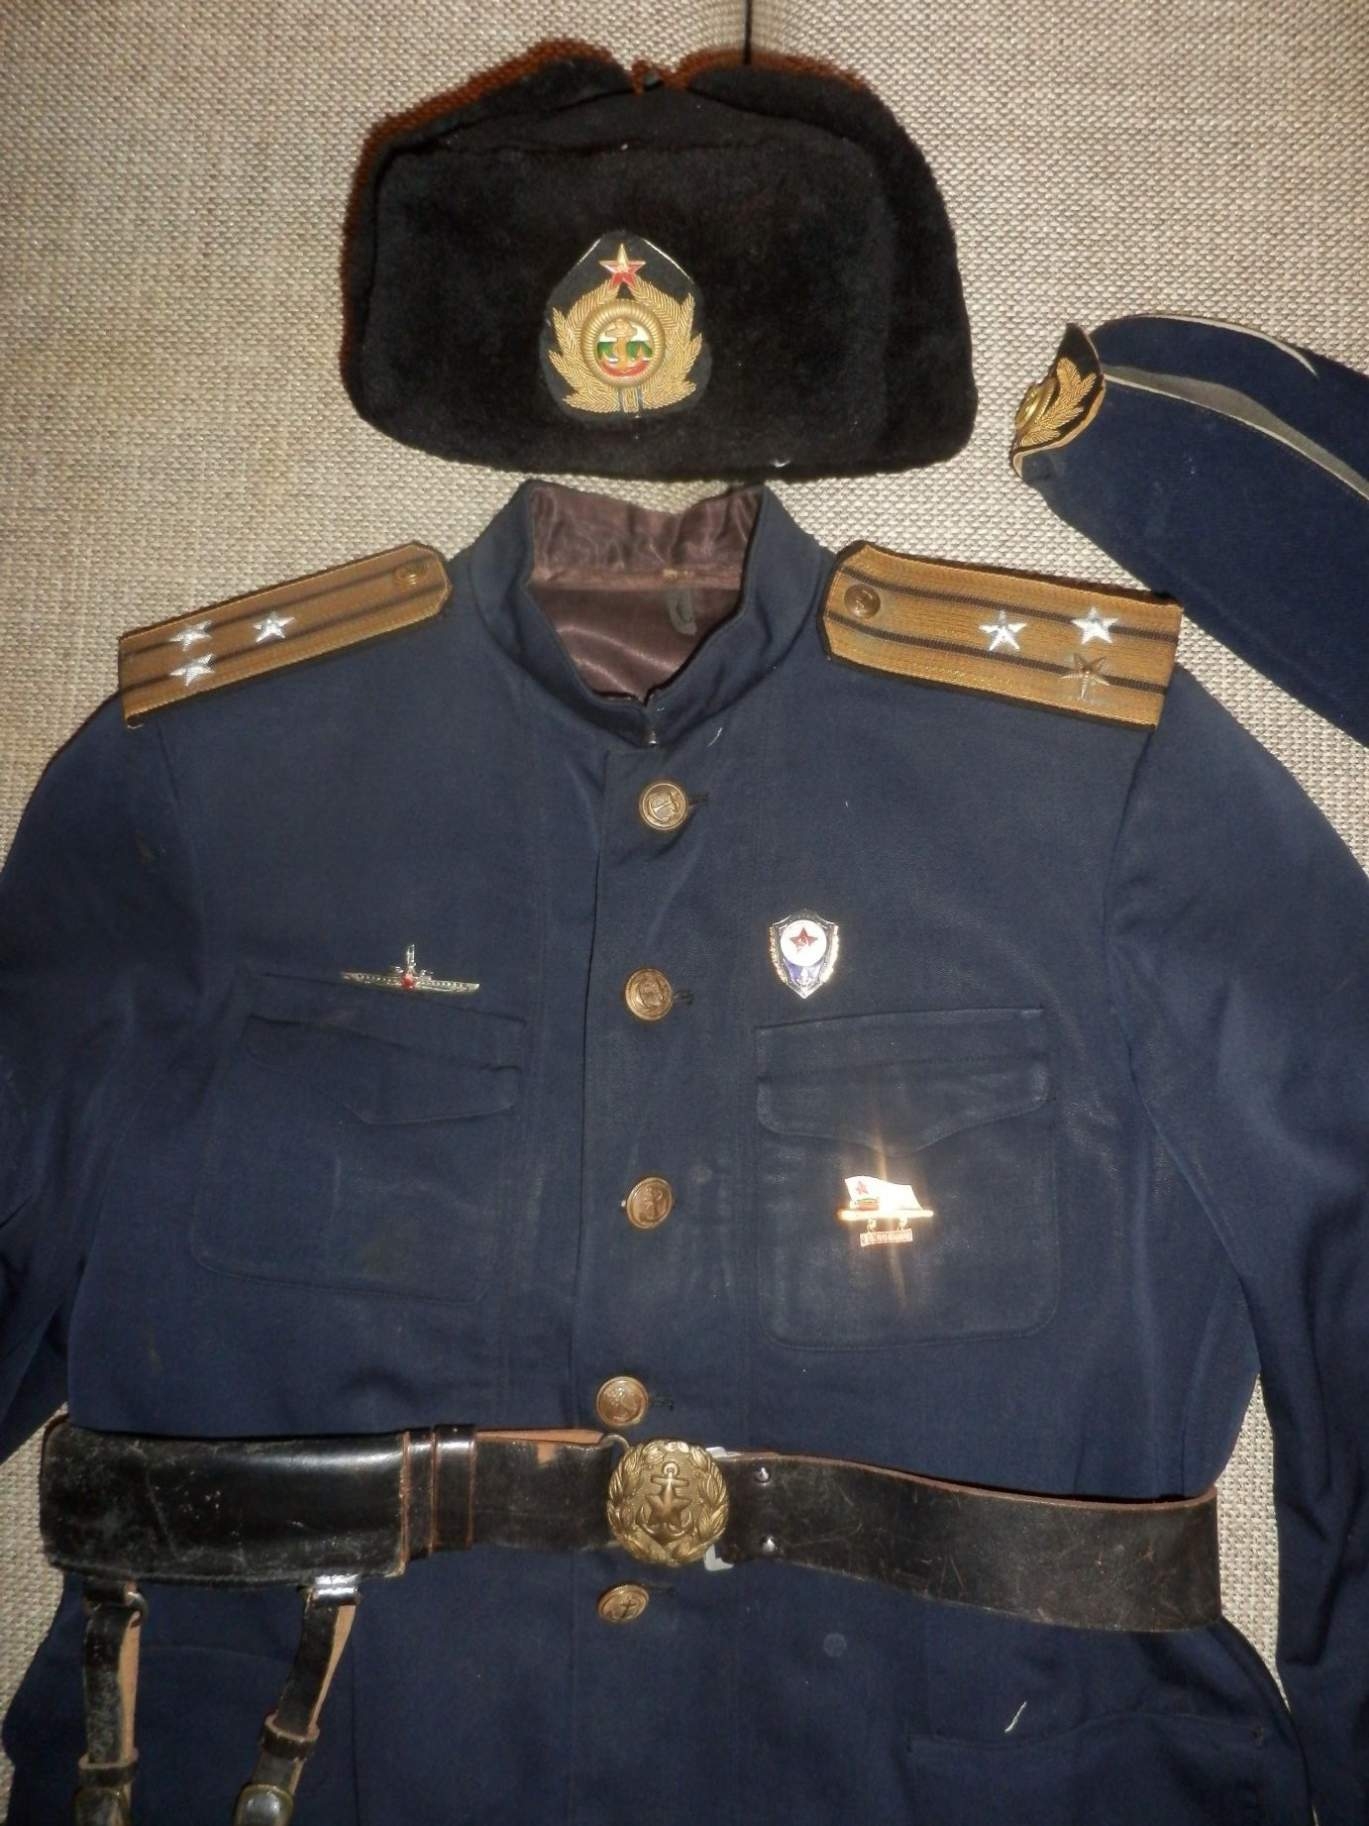 Submarine Uniform 119